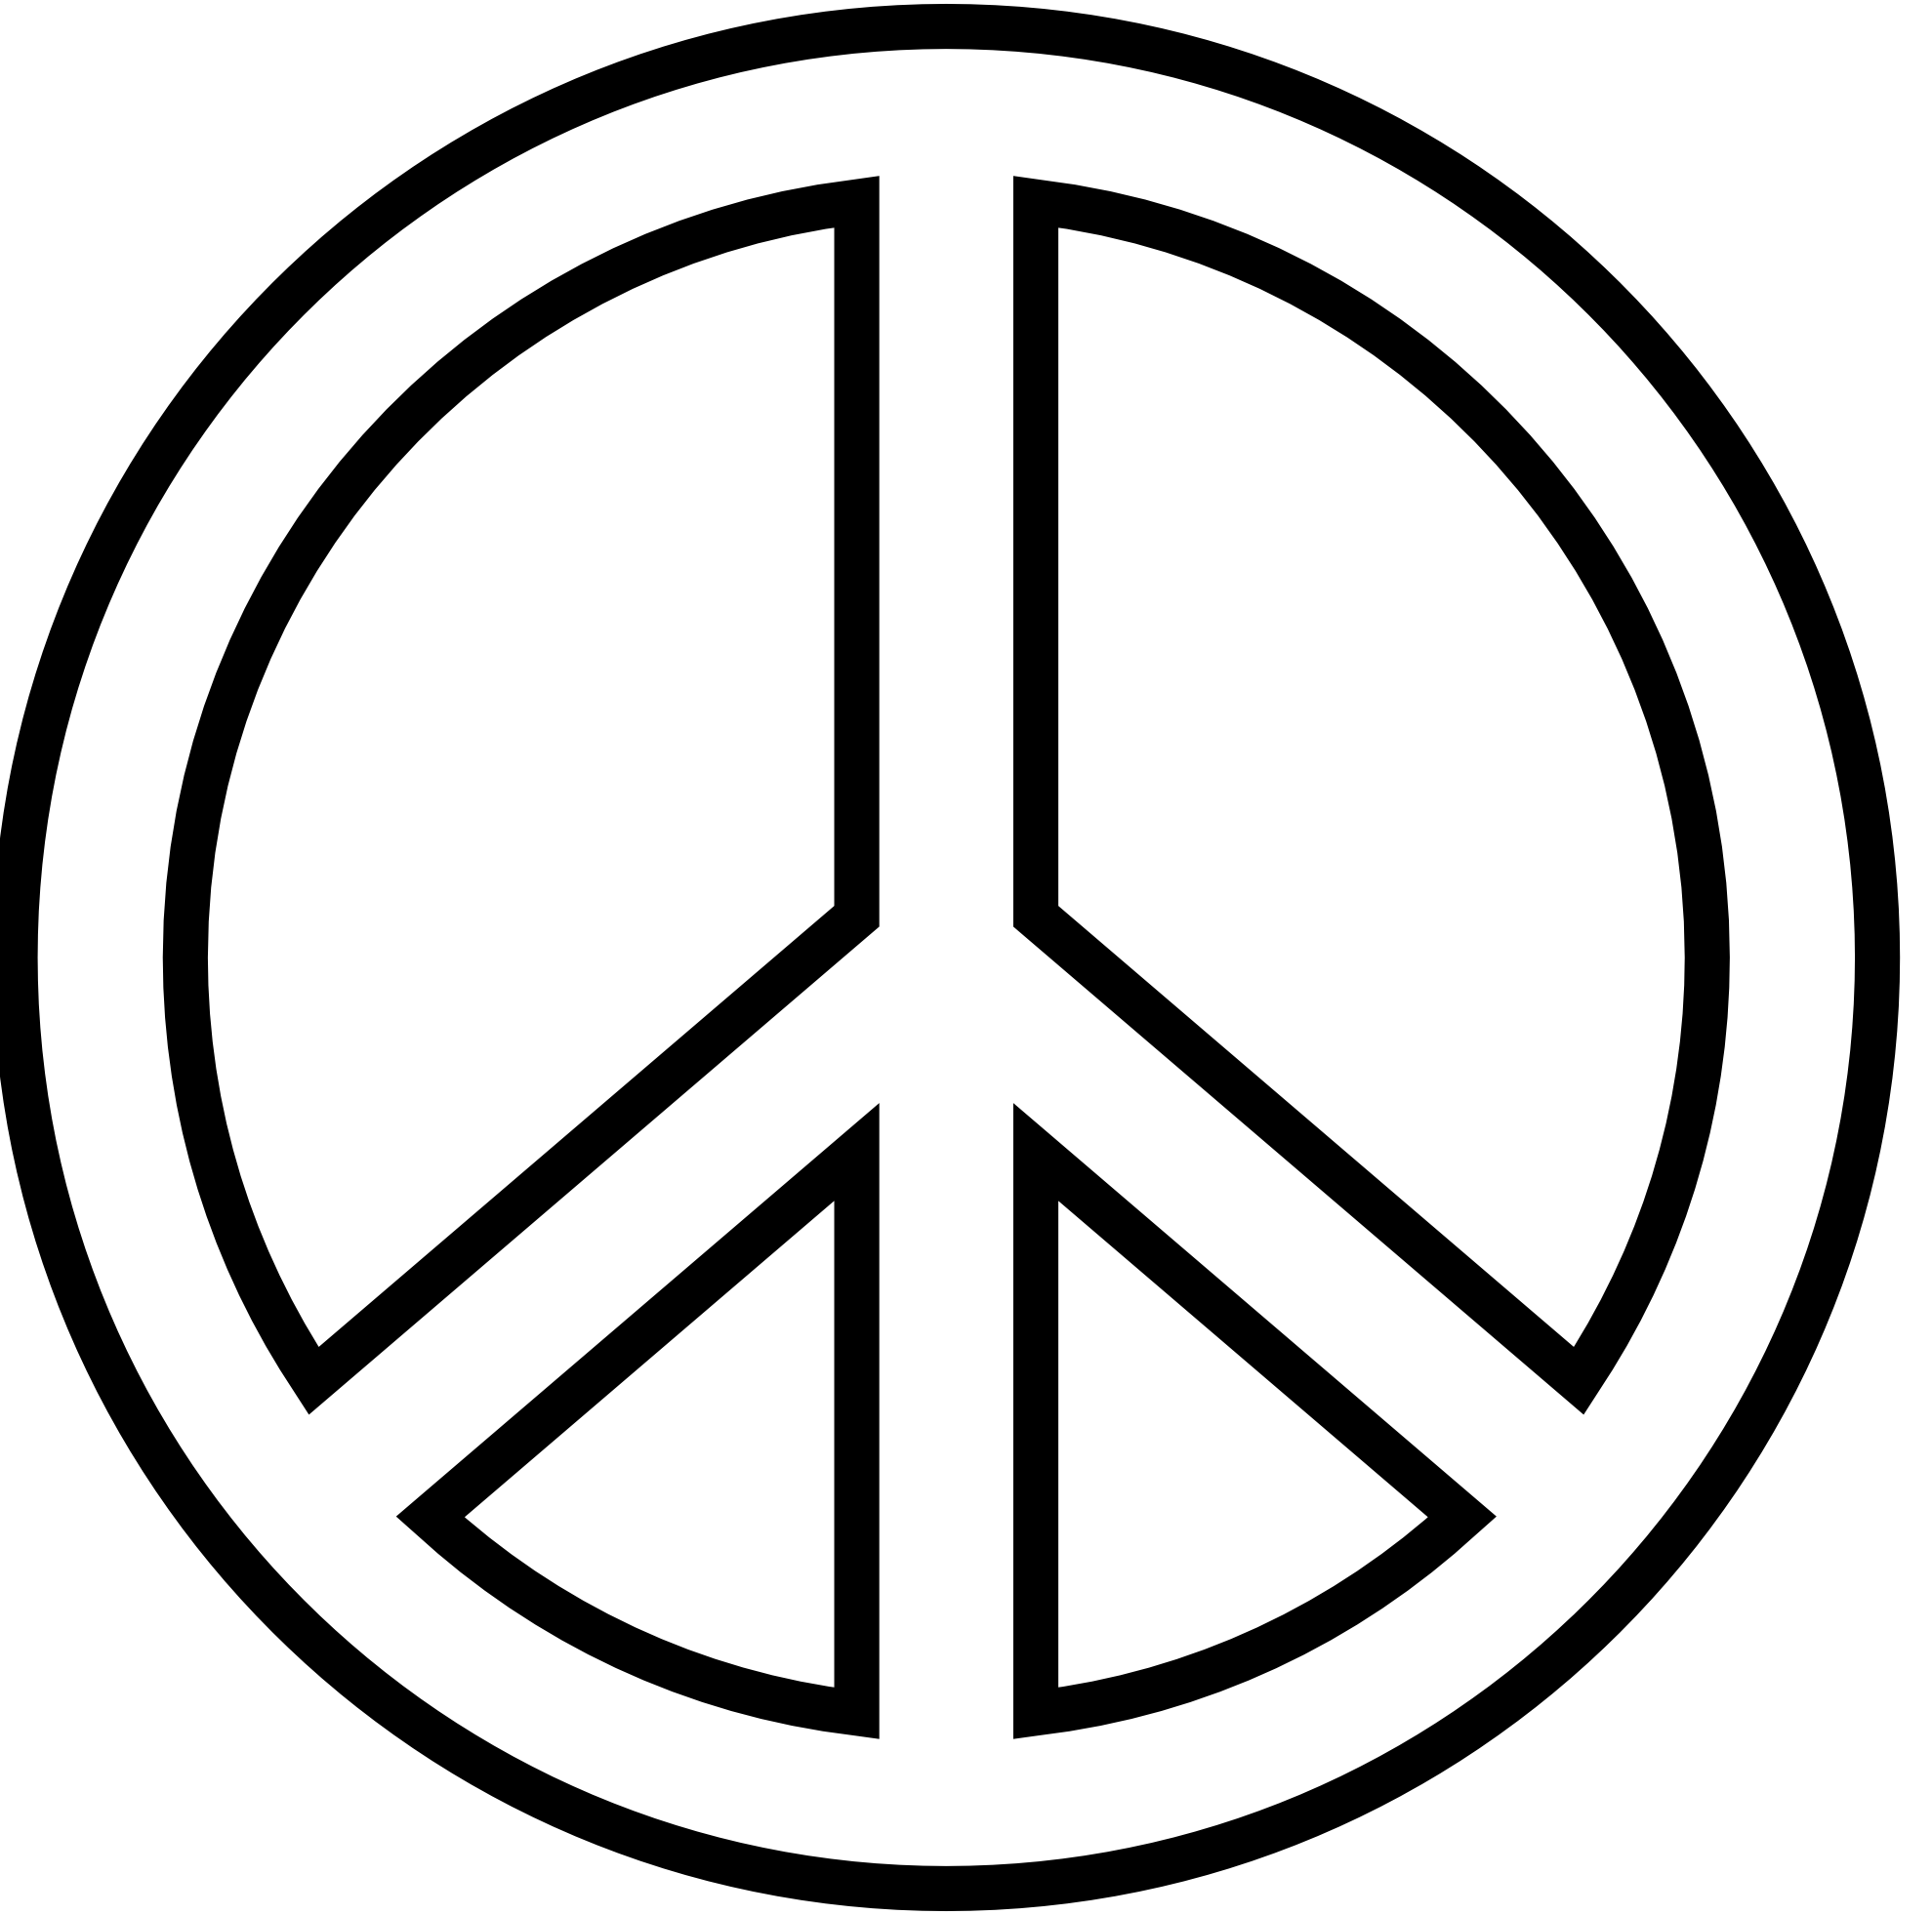 Peace is an occurrence of harmony characterized by lack of violence,  conflict behaviors and the